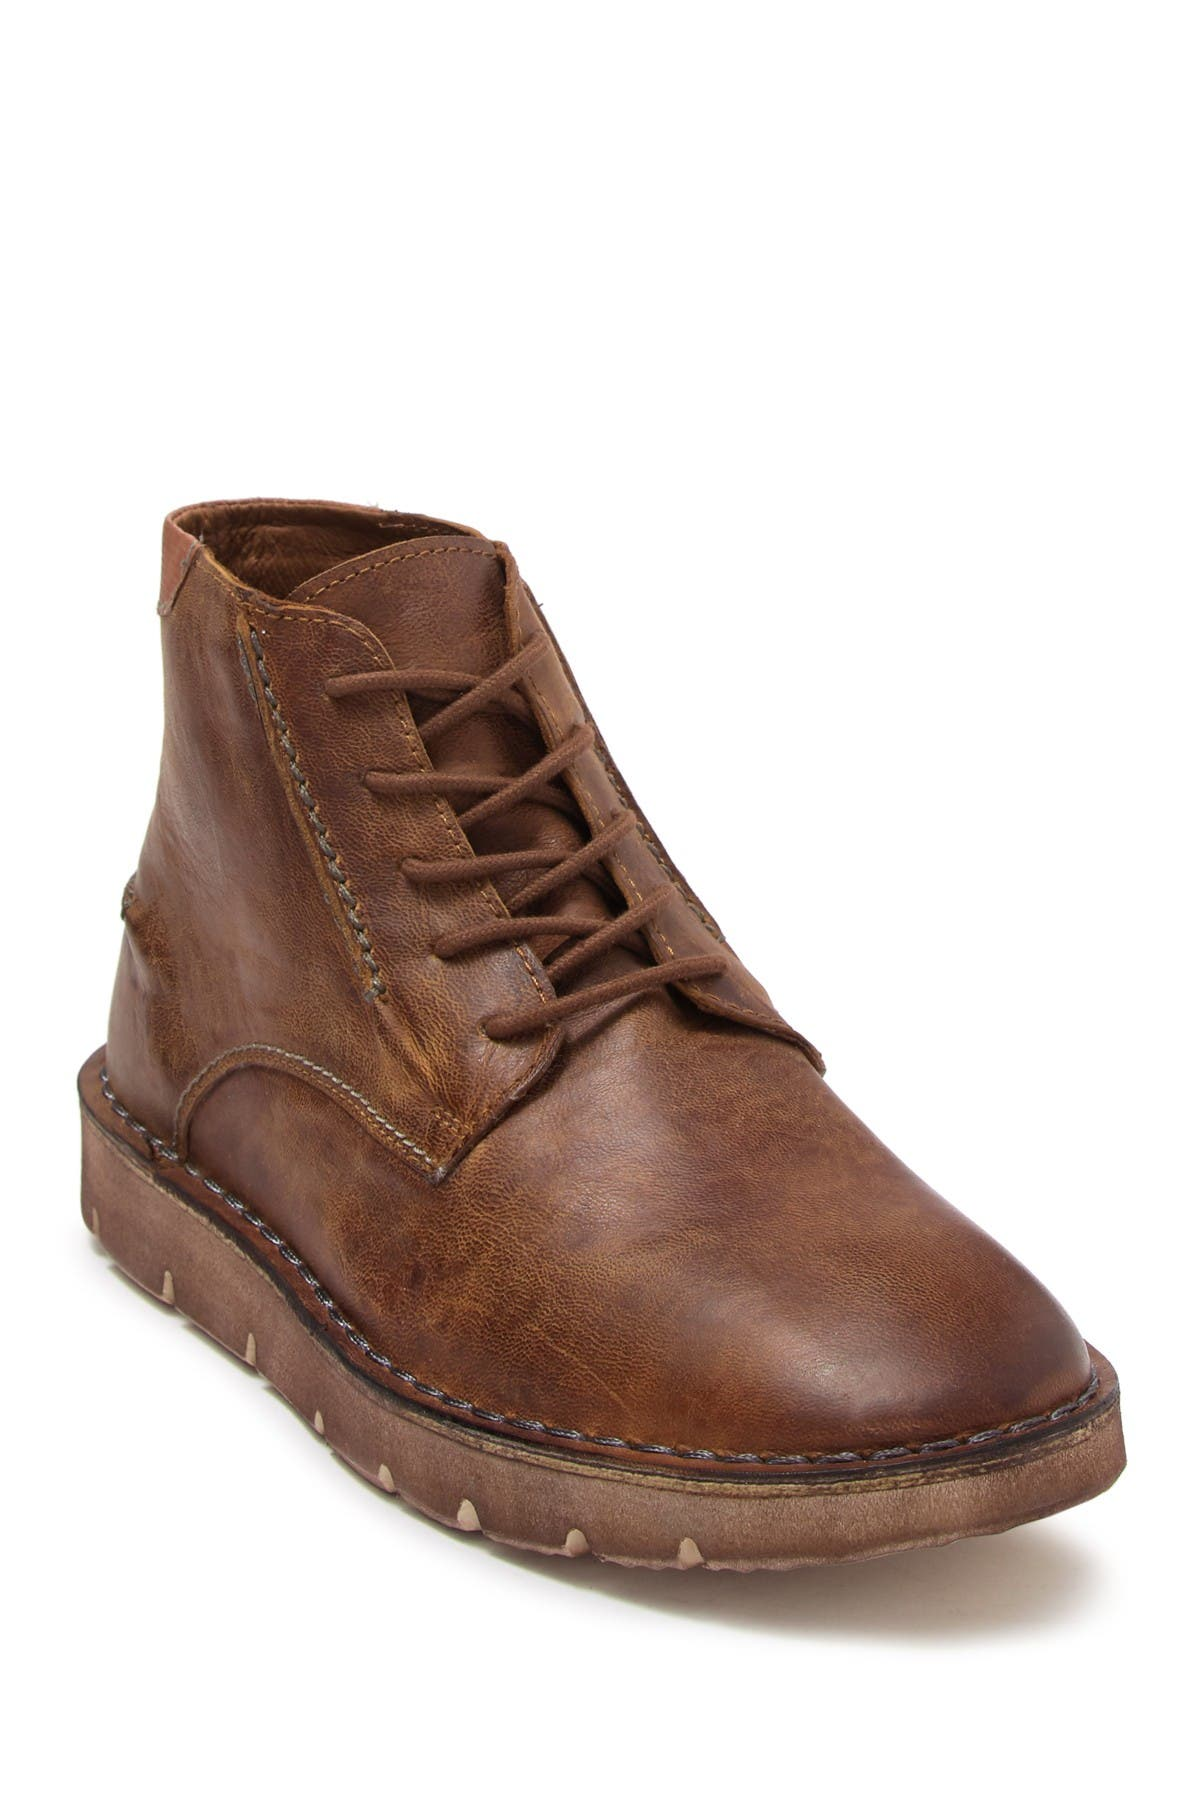 Image of Roan Able Leather Chukka Boot